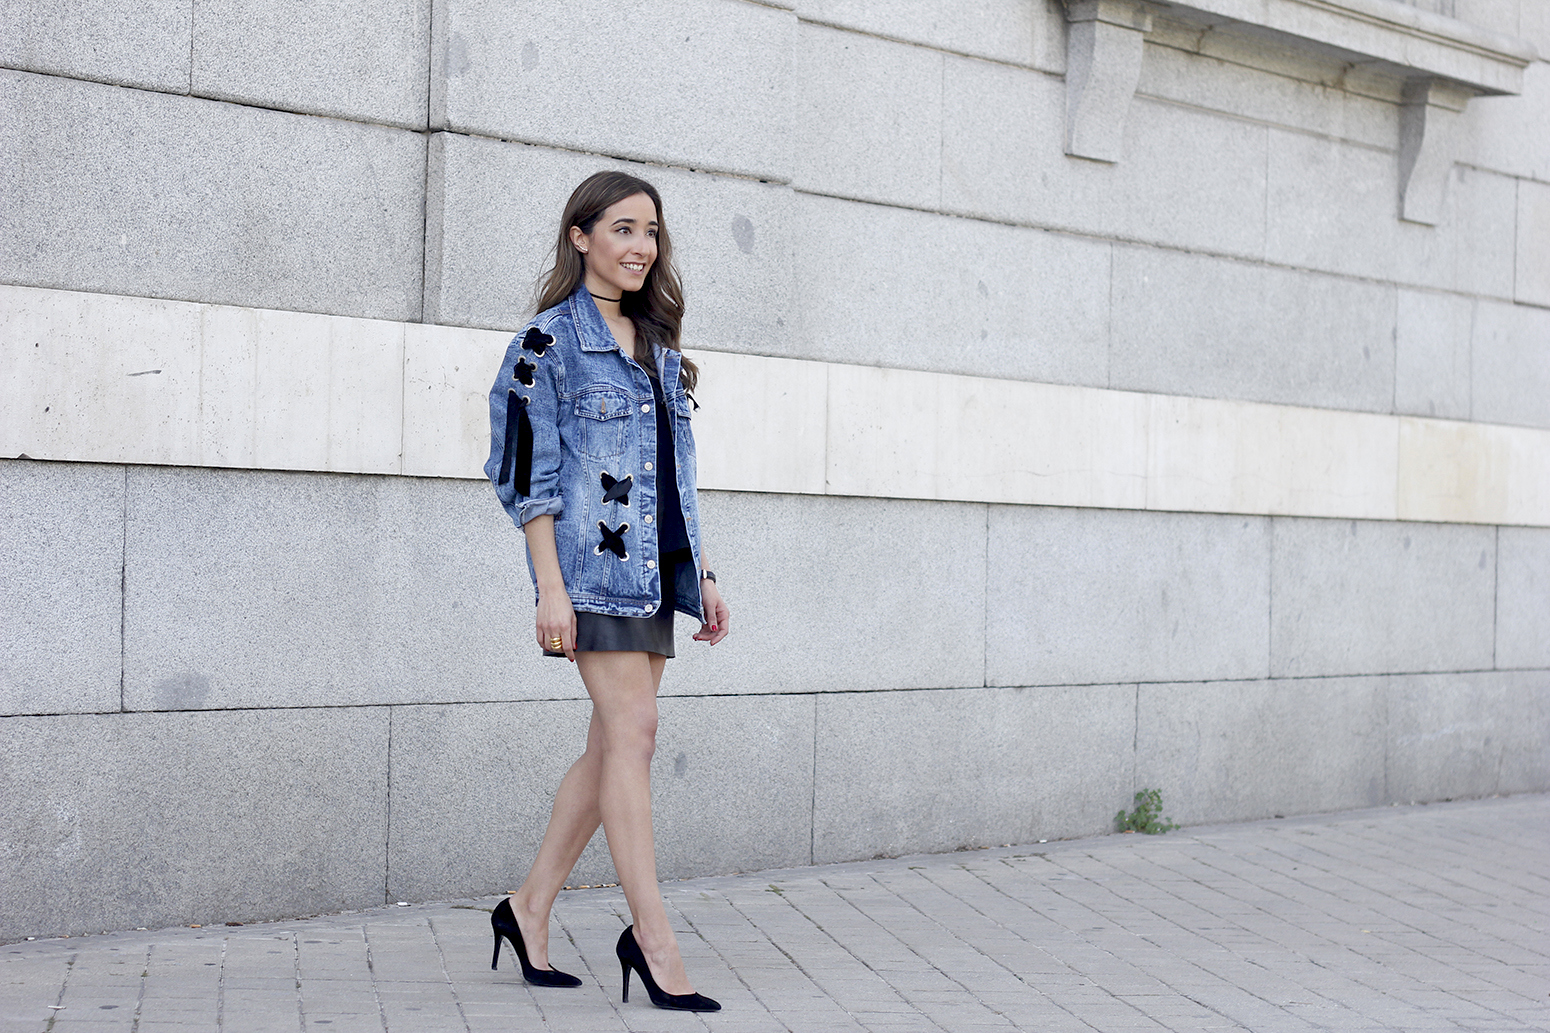 denim jacket leather skirt black heels outfit style fashion summer12